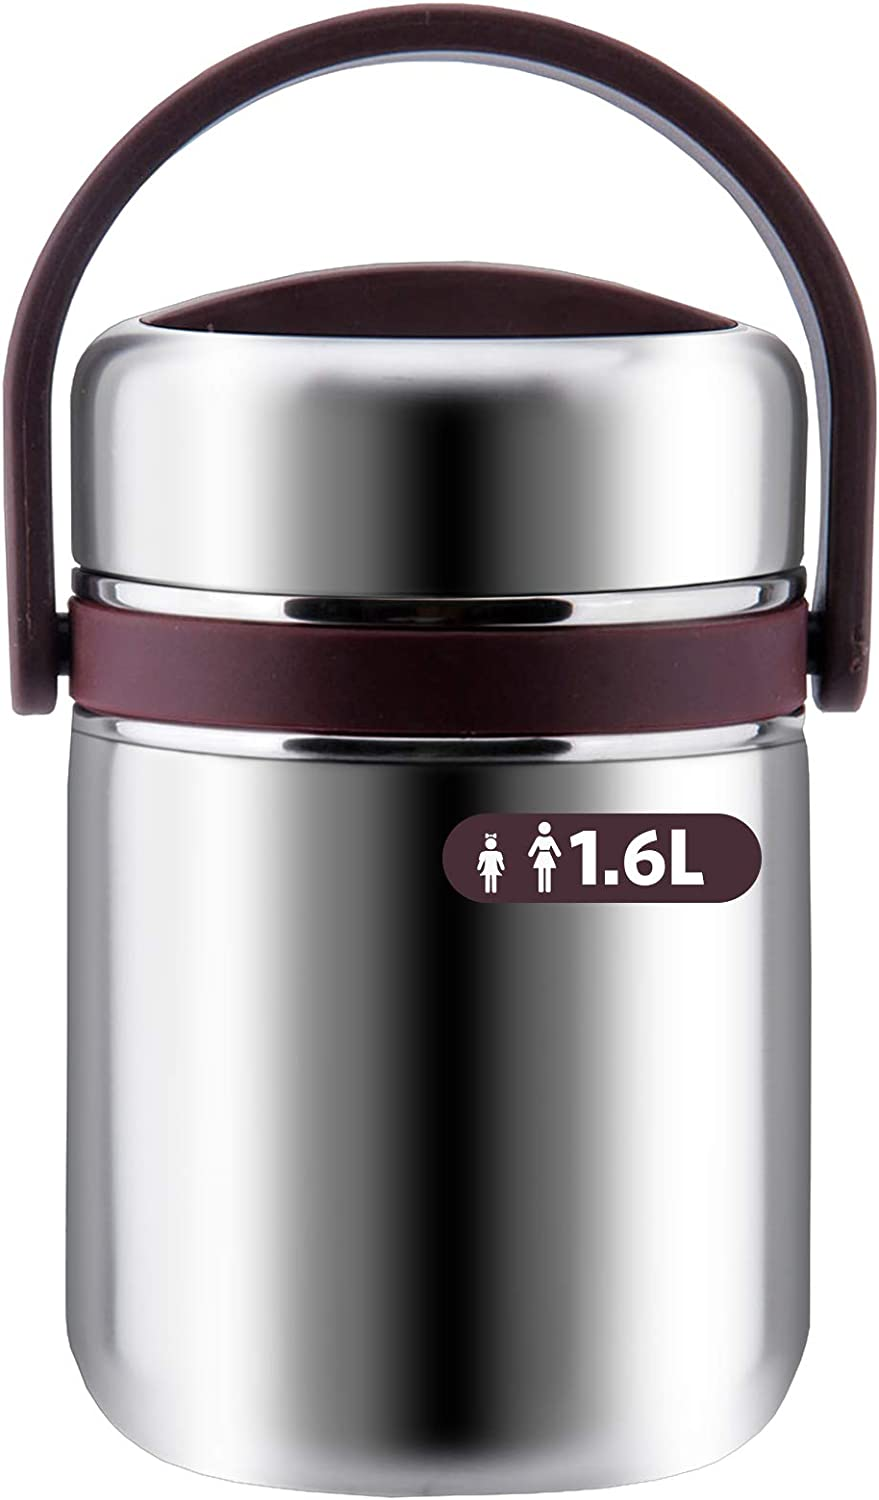 Soup Thermos Wide Mouth,3 Tier Food Thermos Jar, Leakproof Vacuum Bento Lunch Box Food Carrier 304 Stainless Steel Insulated Thermos Food Container Storage Carrier (1.6L-53 OZ, Coffee)